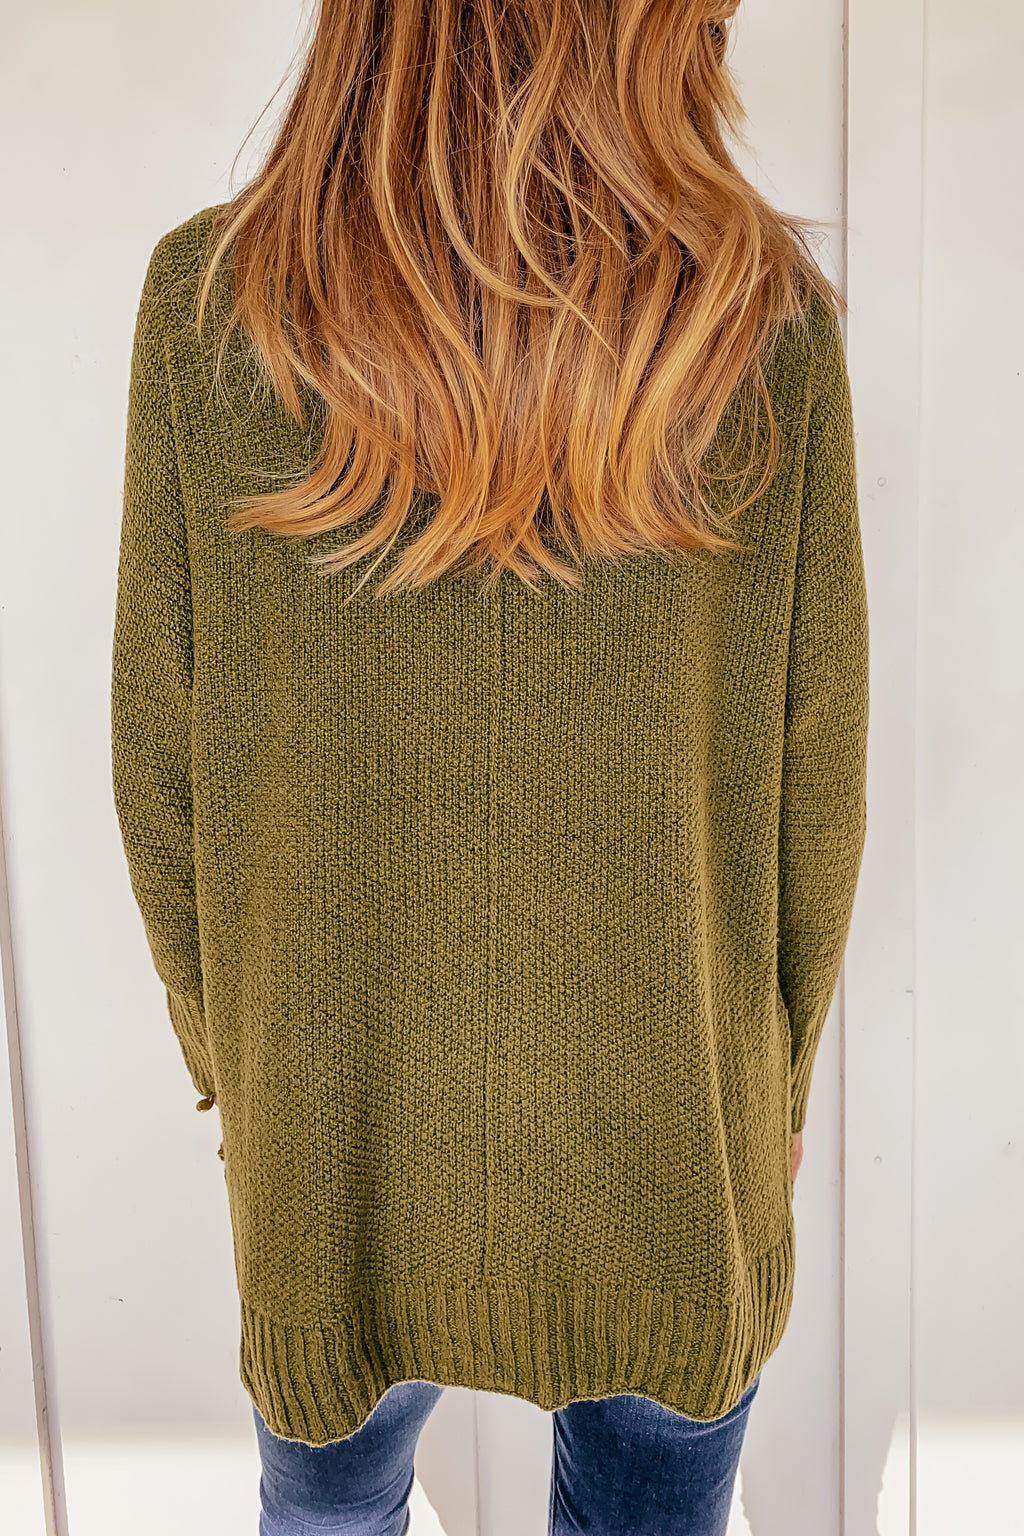 The Sydney Sweater in Olive